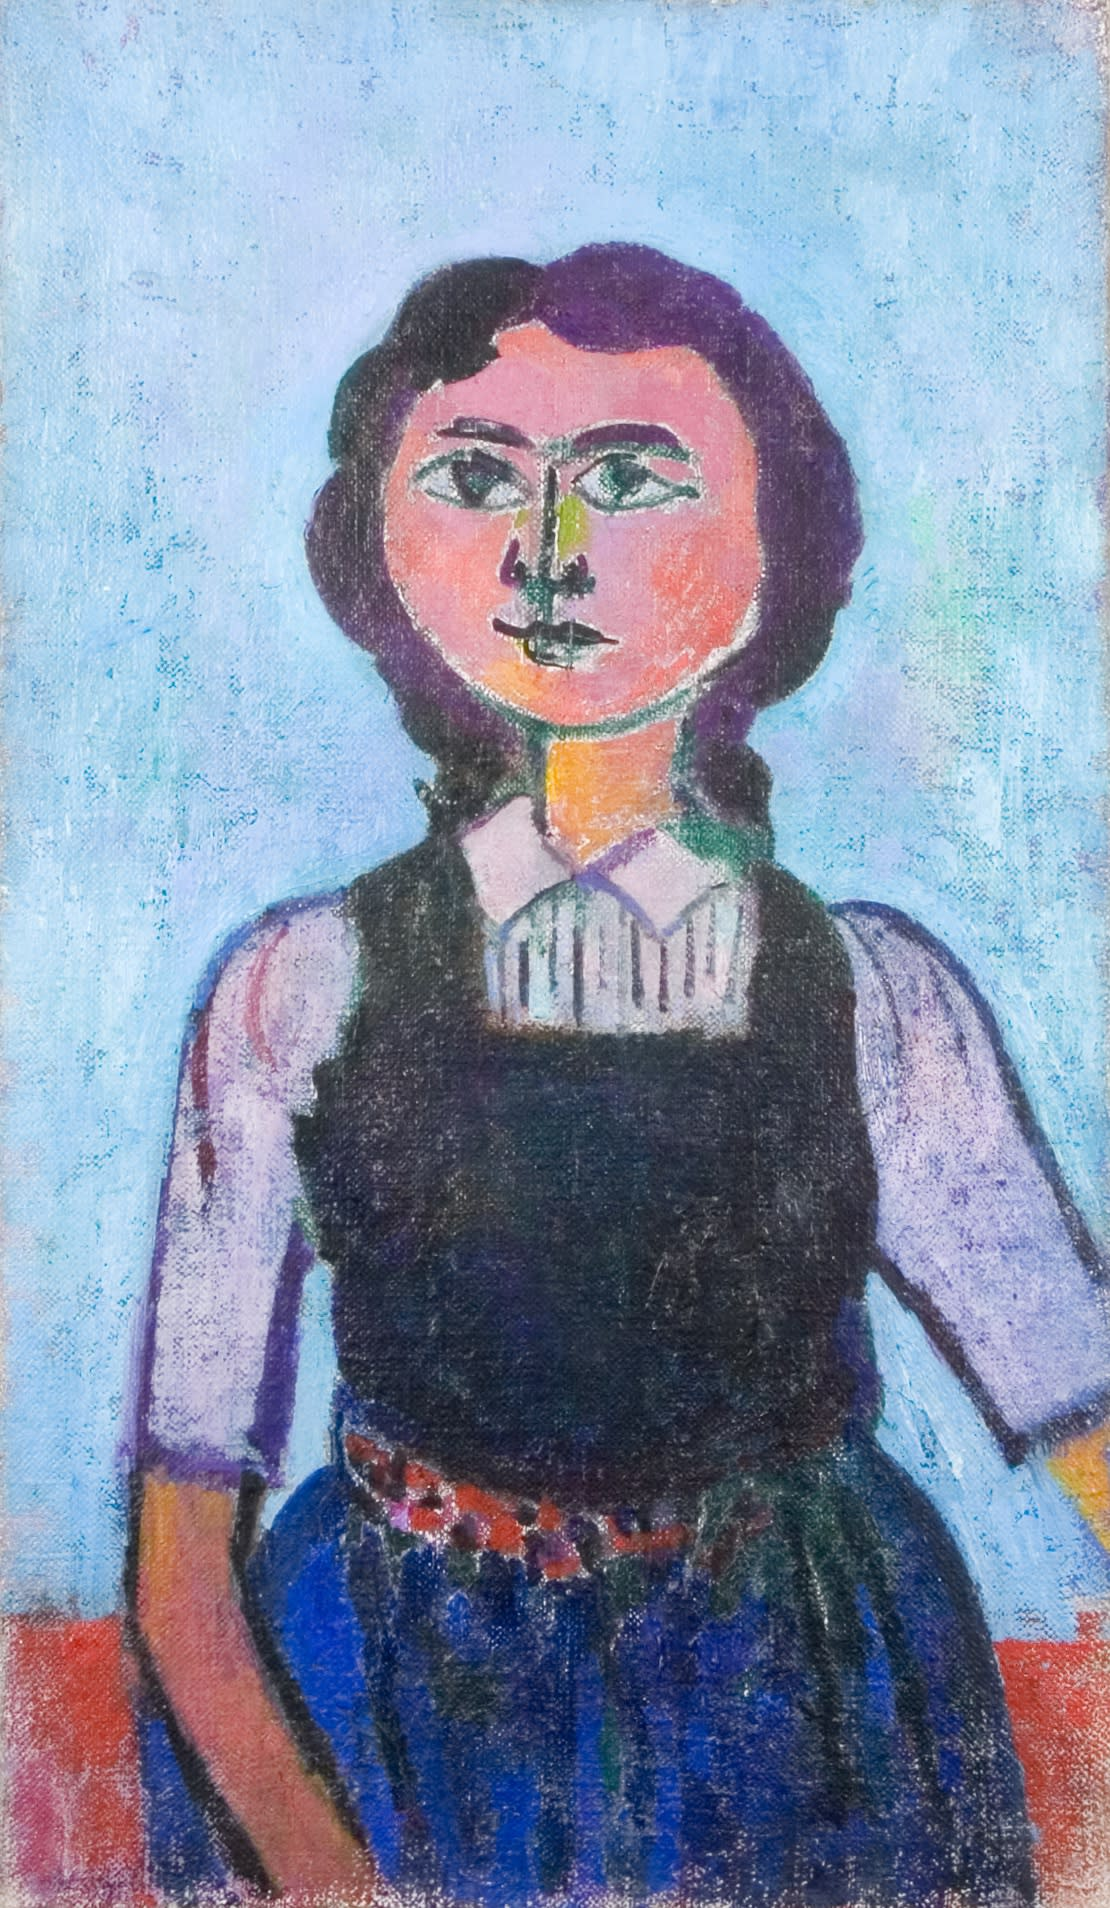 Girl in a pinafore Dated Feb' 1950 verso Oil on canvas 33 3/4 x 19 3/4 inches